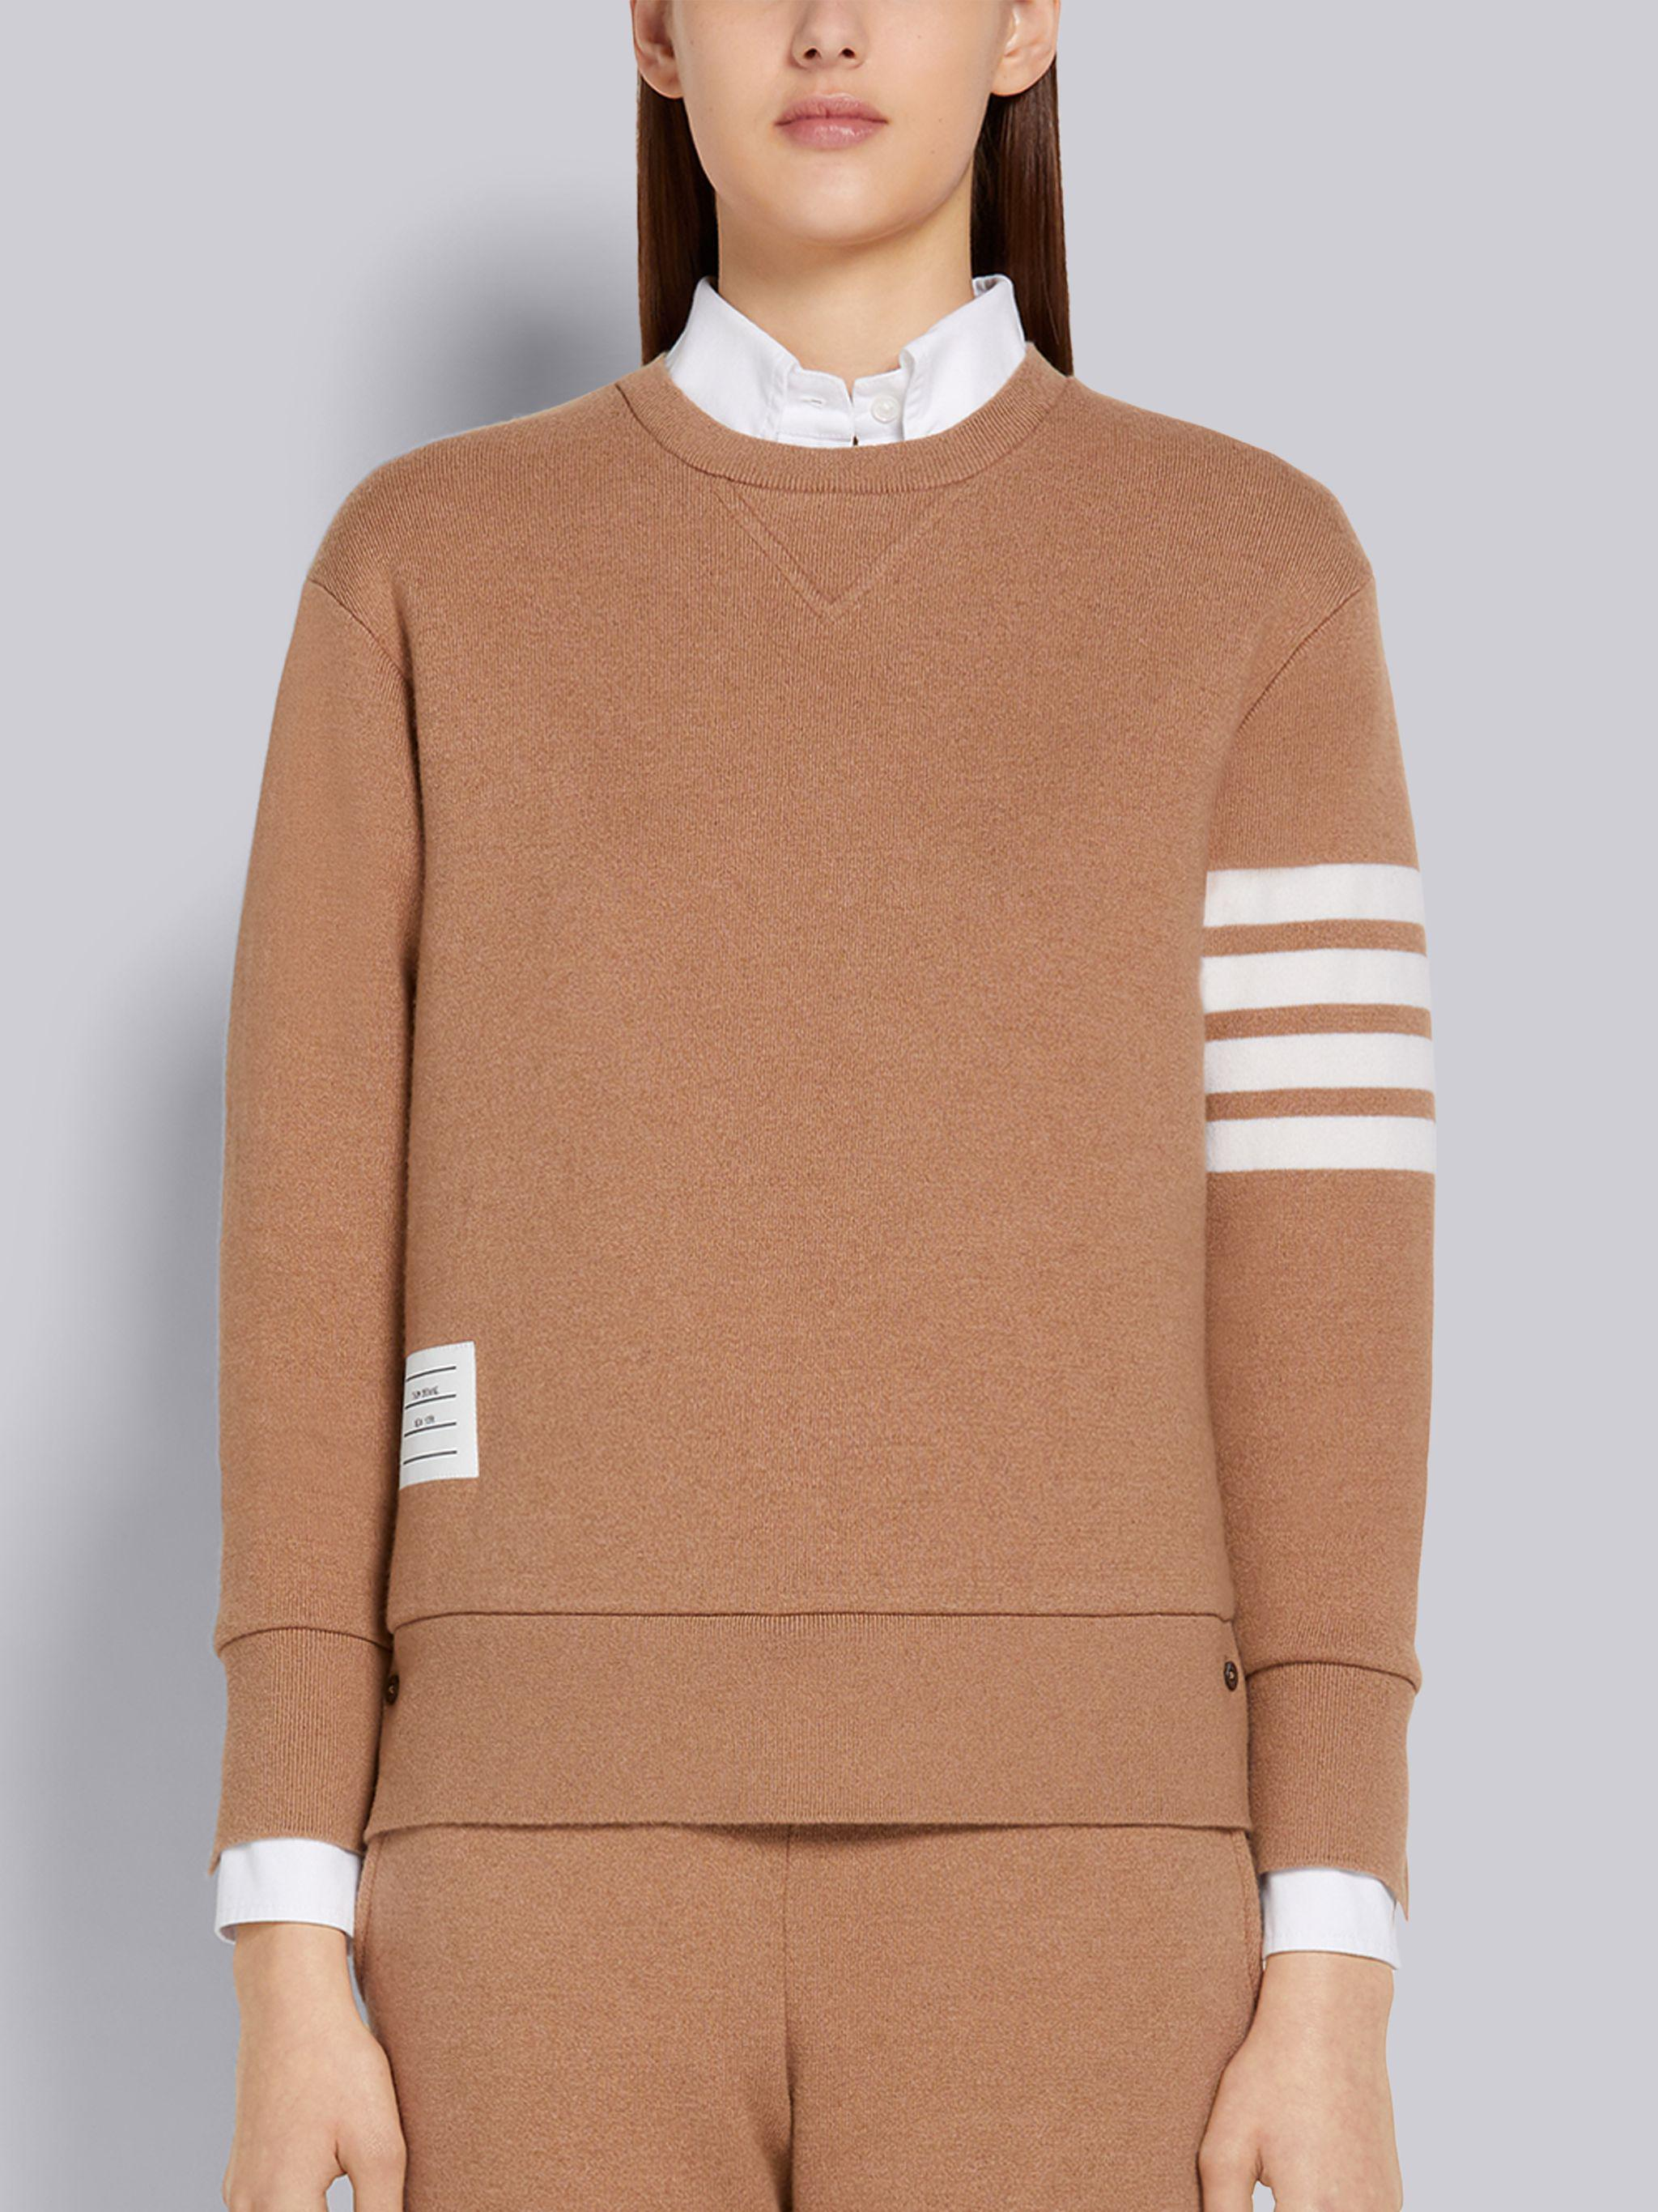 Camel Knitted Double Face Cashmere 4-Bar Relaxed Fit Crew Neck Pullover